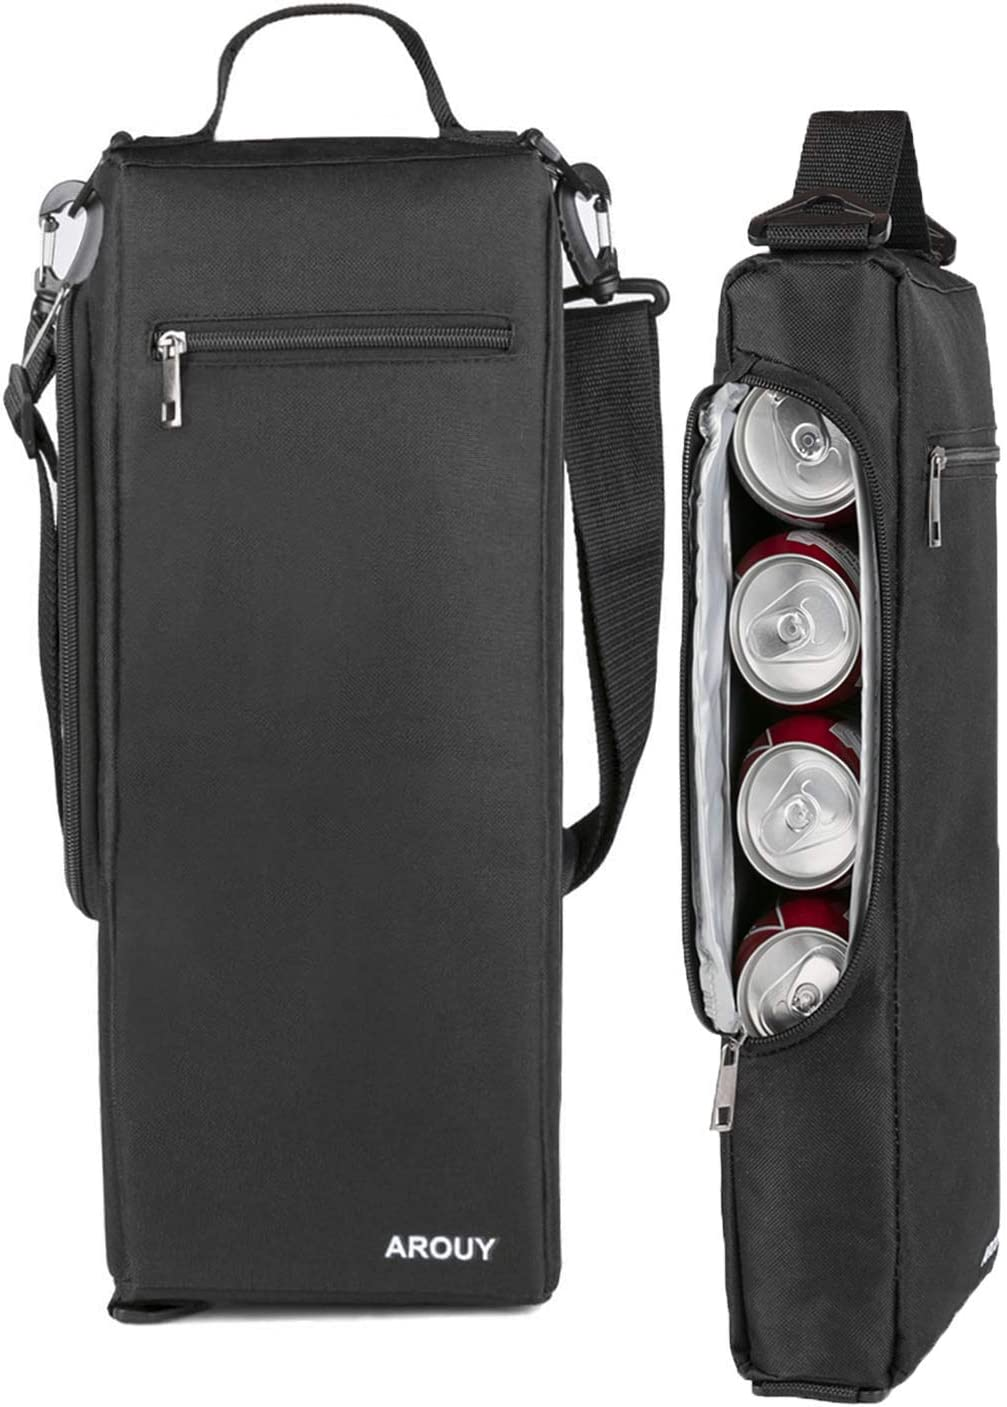 AROUY Golf Cooler Bag - Small Soft Cooler Holds a 6 Pack of Cans or Two Bottles of Wine